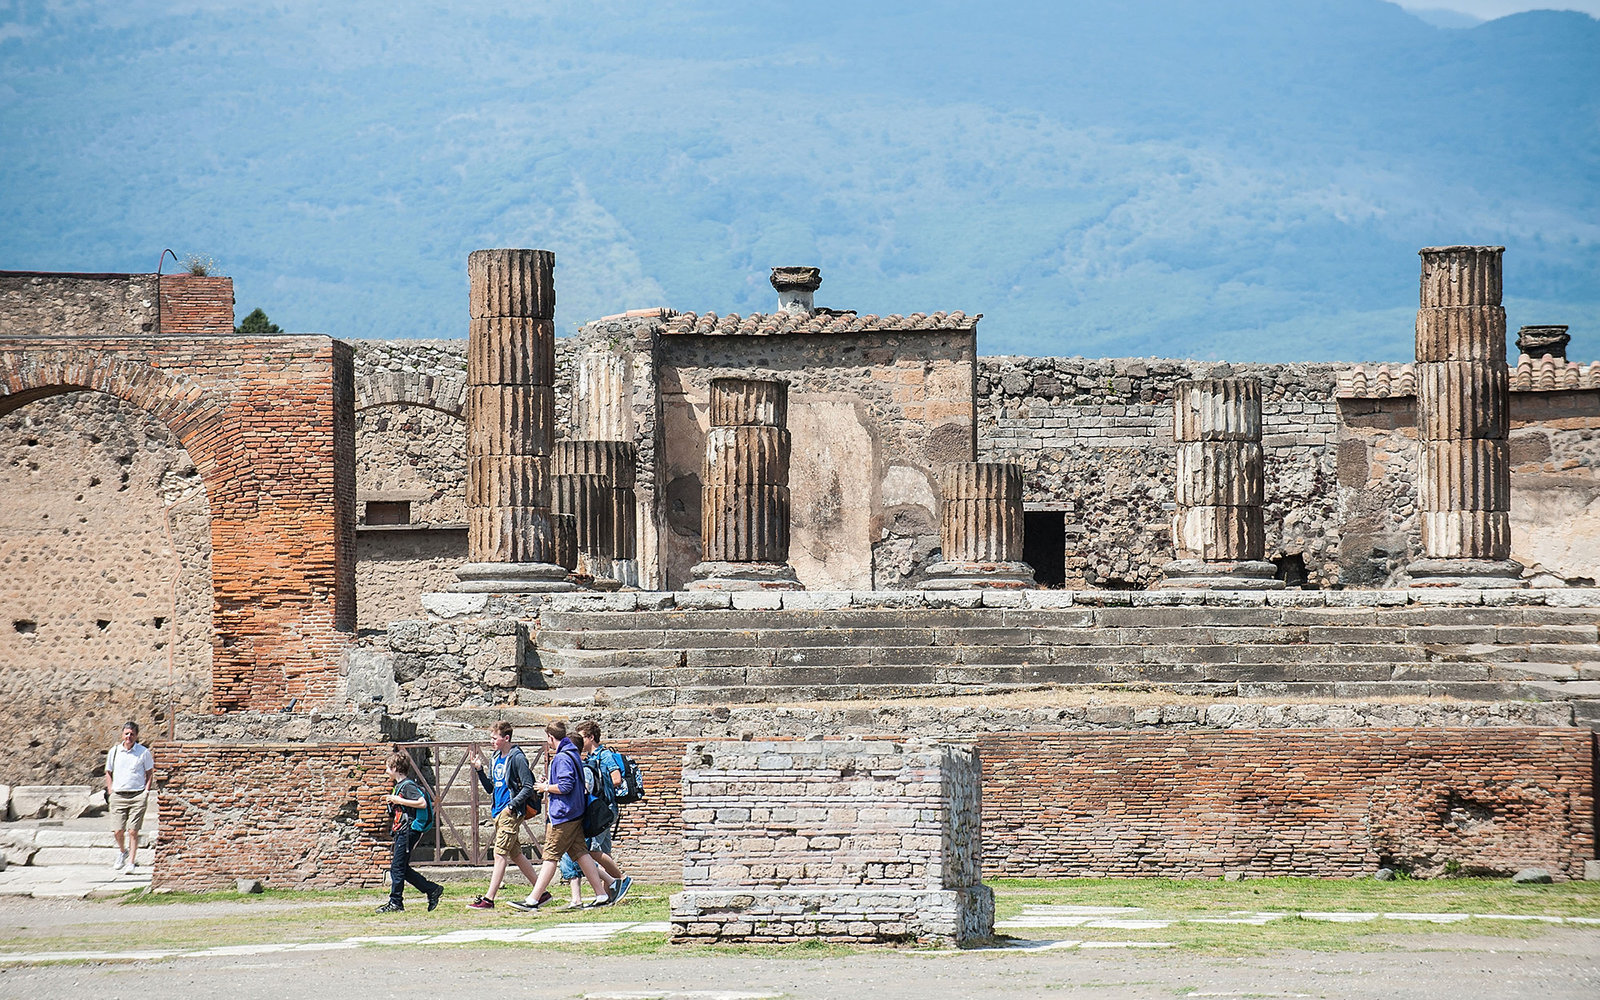 POMPEI, ITALY - APRIL 12:  Tourists visit the ruins of the 'Tempio di Giove' (Temple of Jupiter) at the archeological site on April 12, 2014 in Pompei, Italy.  The Italian government has enacted a series of provisions for the strengthening of the private